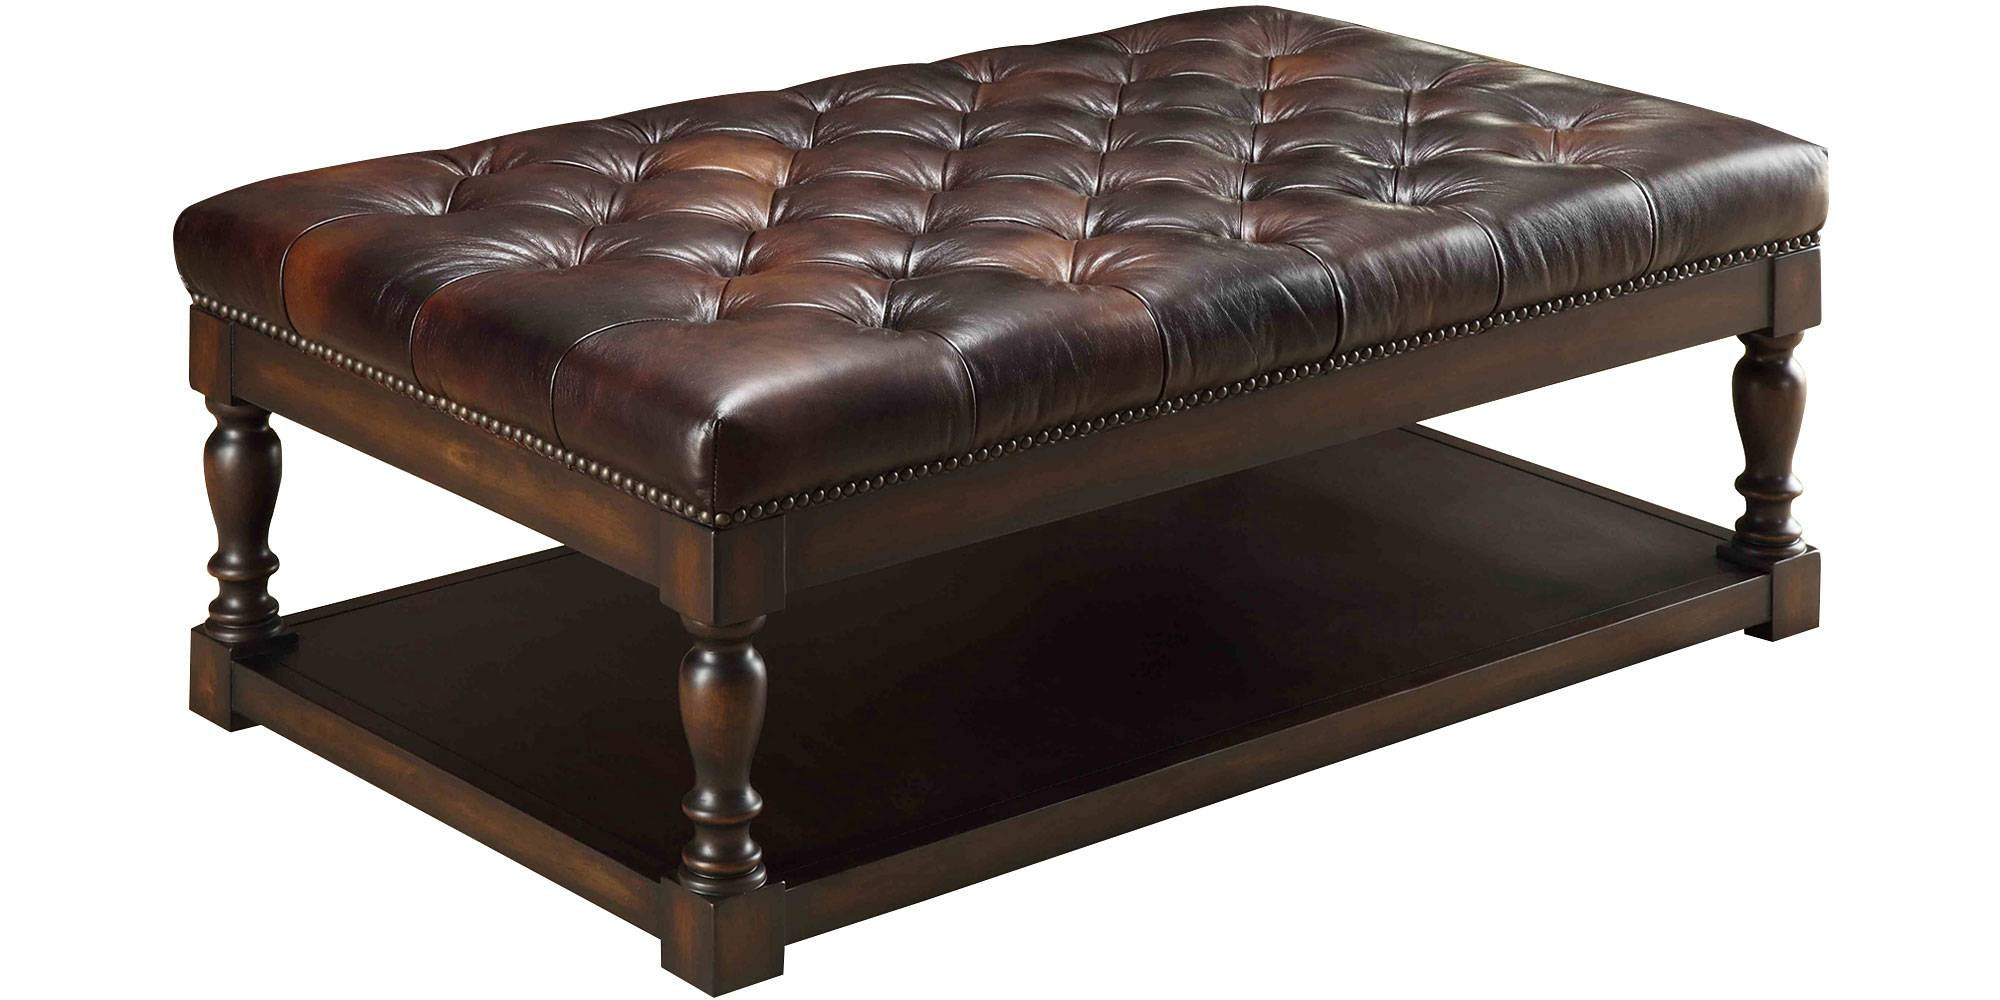 Coffee Table: Stunning Round Leather Ottoman Coffee Table Design Regarding Brown Leather Ottoman Coffee Tables (View 12 of 30)